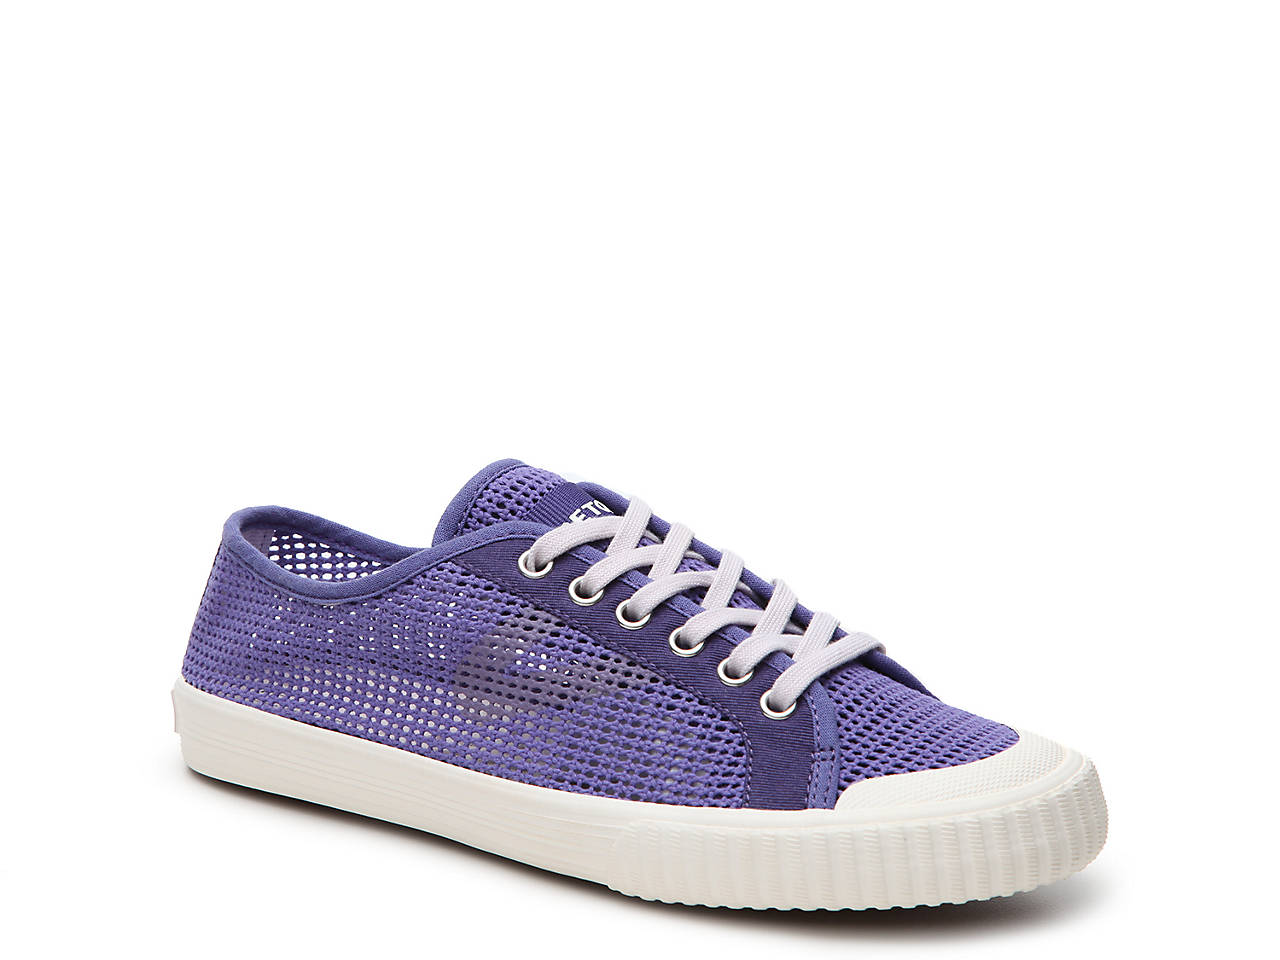 where can i order marketable Tretorn Mesh Sneakers clearance new clearance official clearance cheap X4EoT8Ds